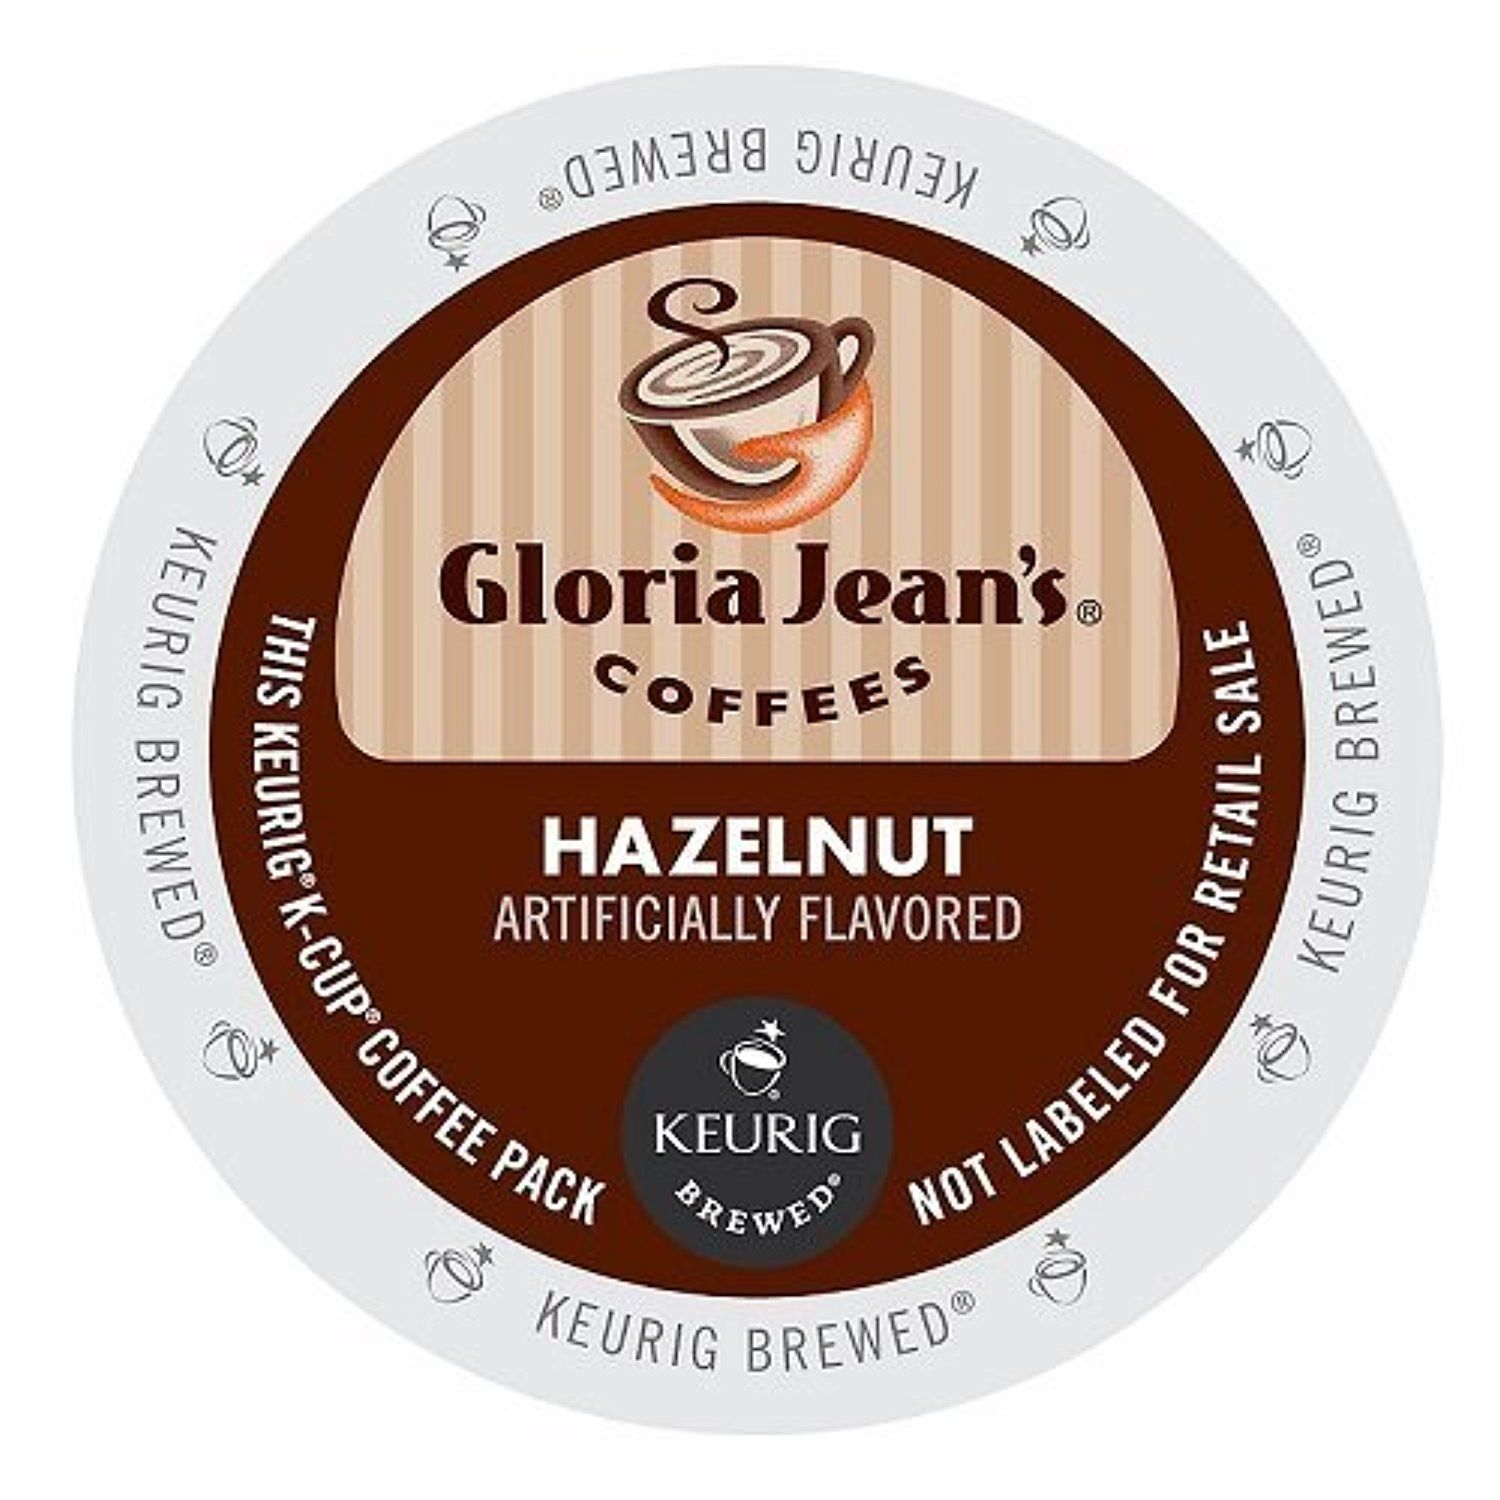 Gloria jeans coffee hazelnut kcup portion pack for